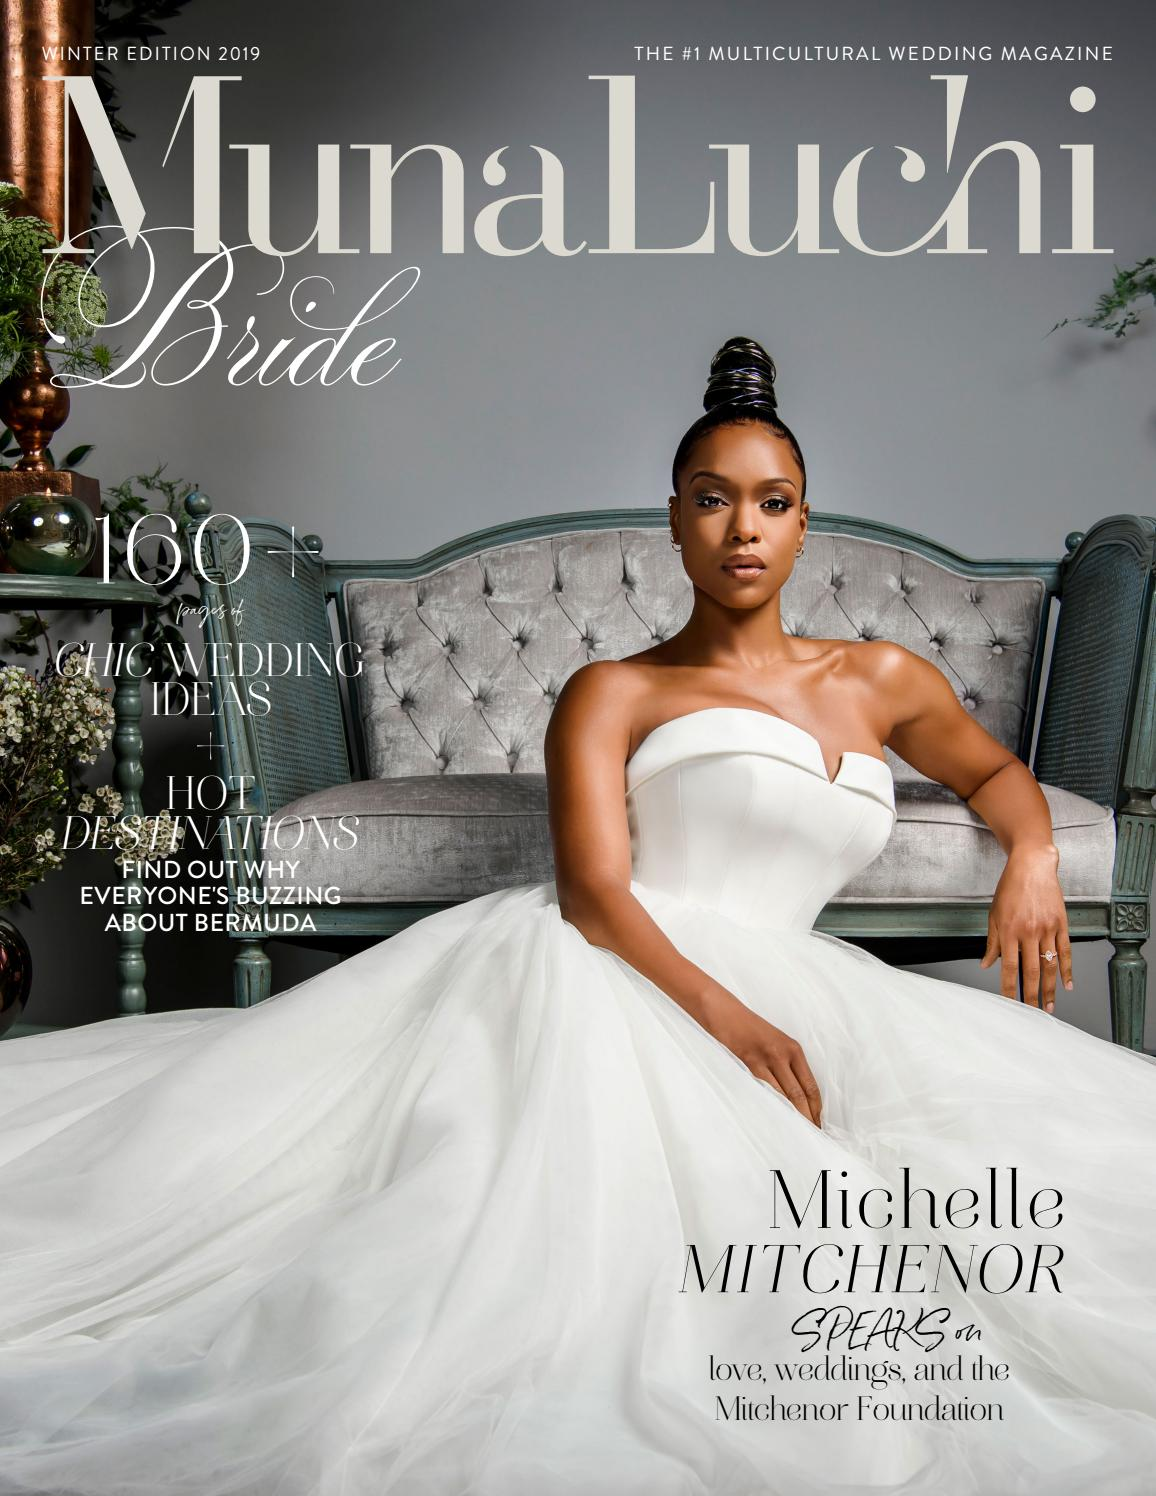 f0eebd57e5b1c Munaluchi Winter 2019 Wedding Magazine by Munaluchi - issuu